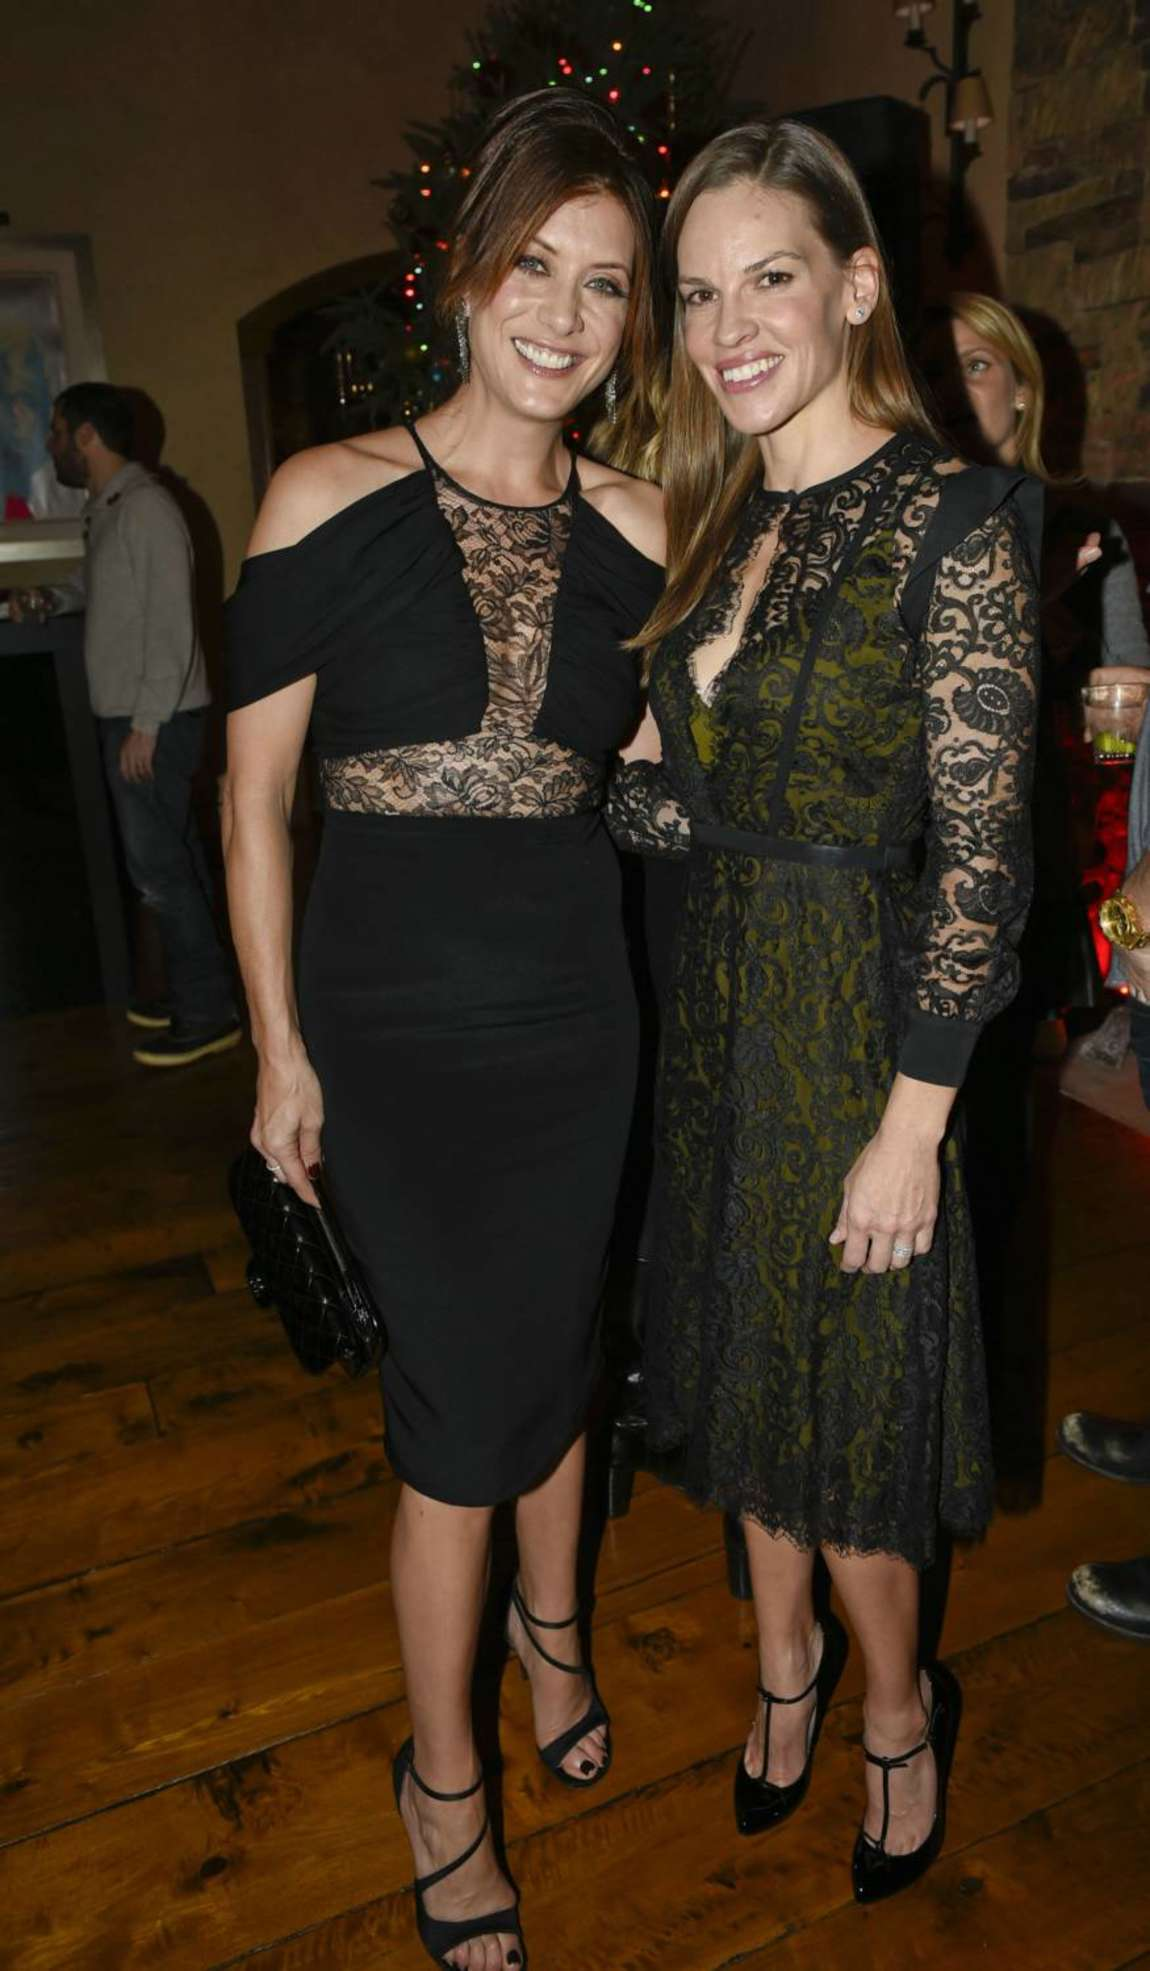 Kate Walsh Hilary Swank Audi Celebrates The Holidays In Aspen